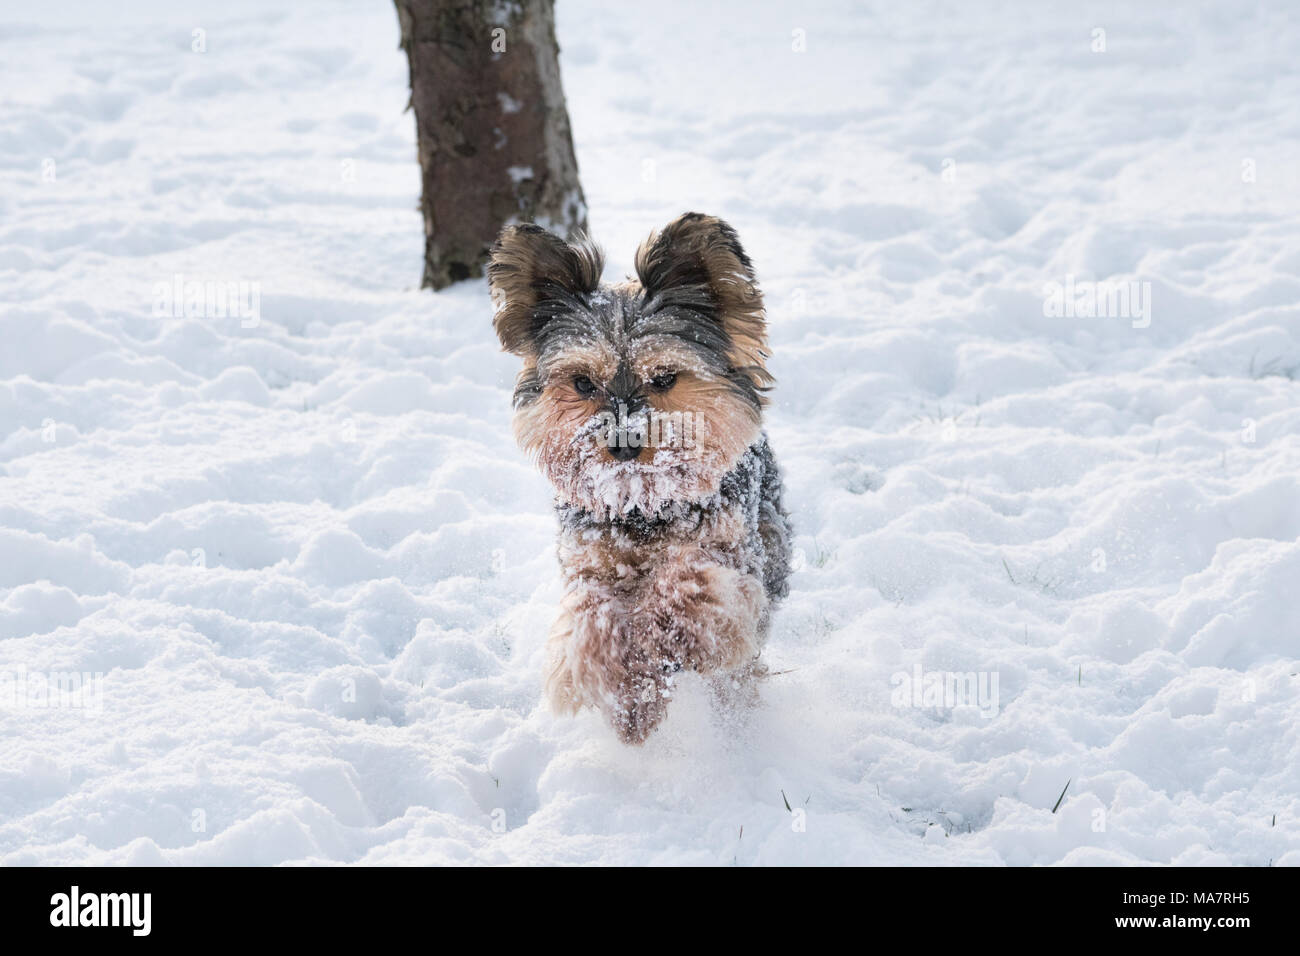 Yorkie Running In The Snow In Winter Stock Photo 178422417 Alamy